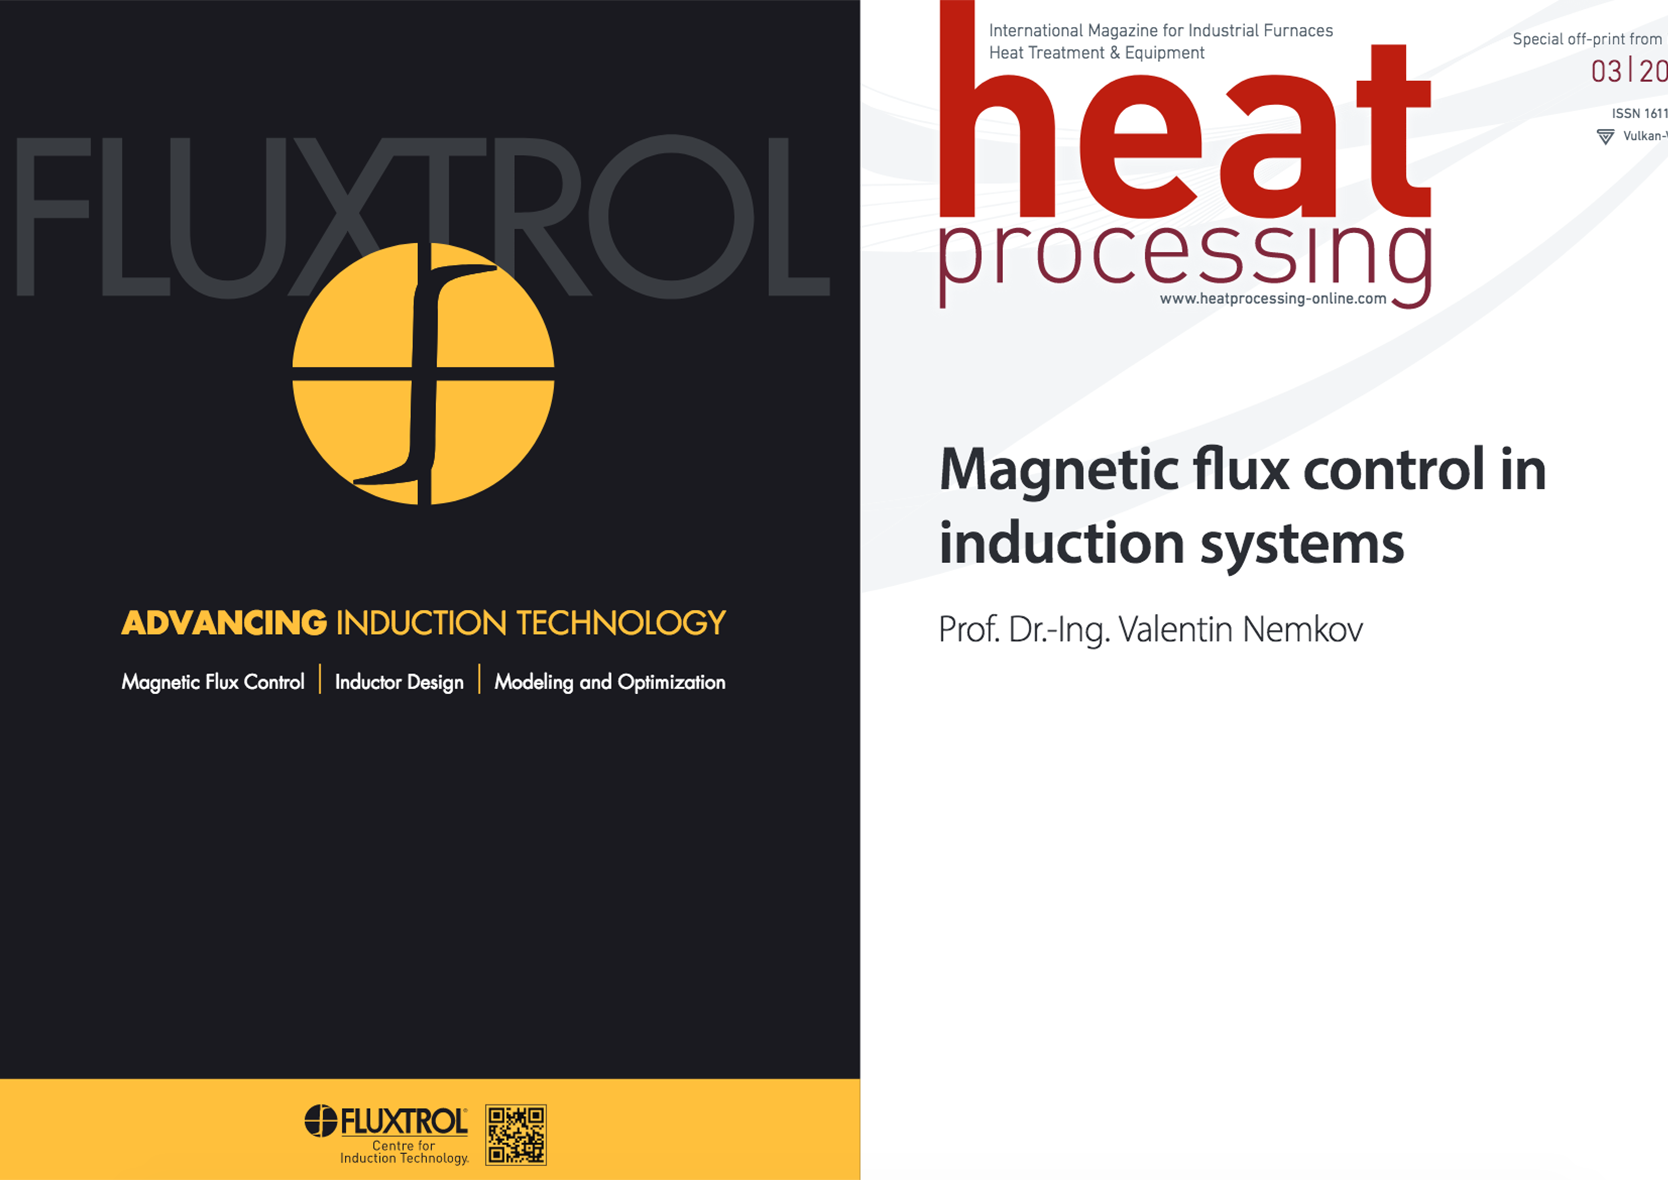 Fluxtrol Int. Magazine: Heat Processing 2014 - Magnetic Flux Control in Induction Systems